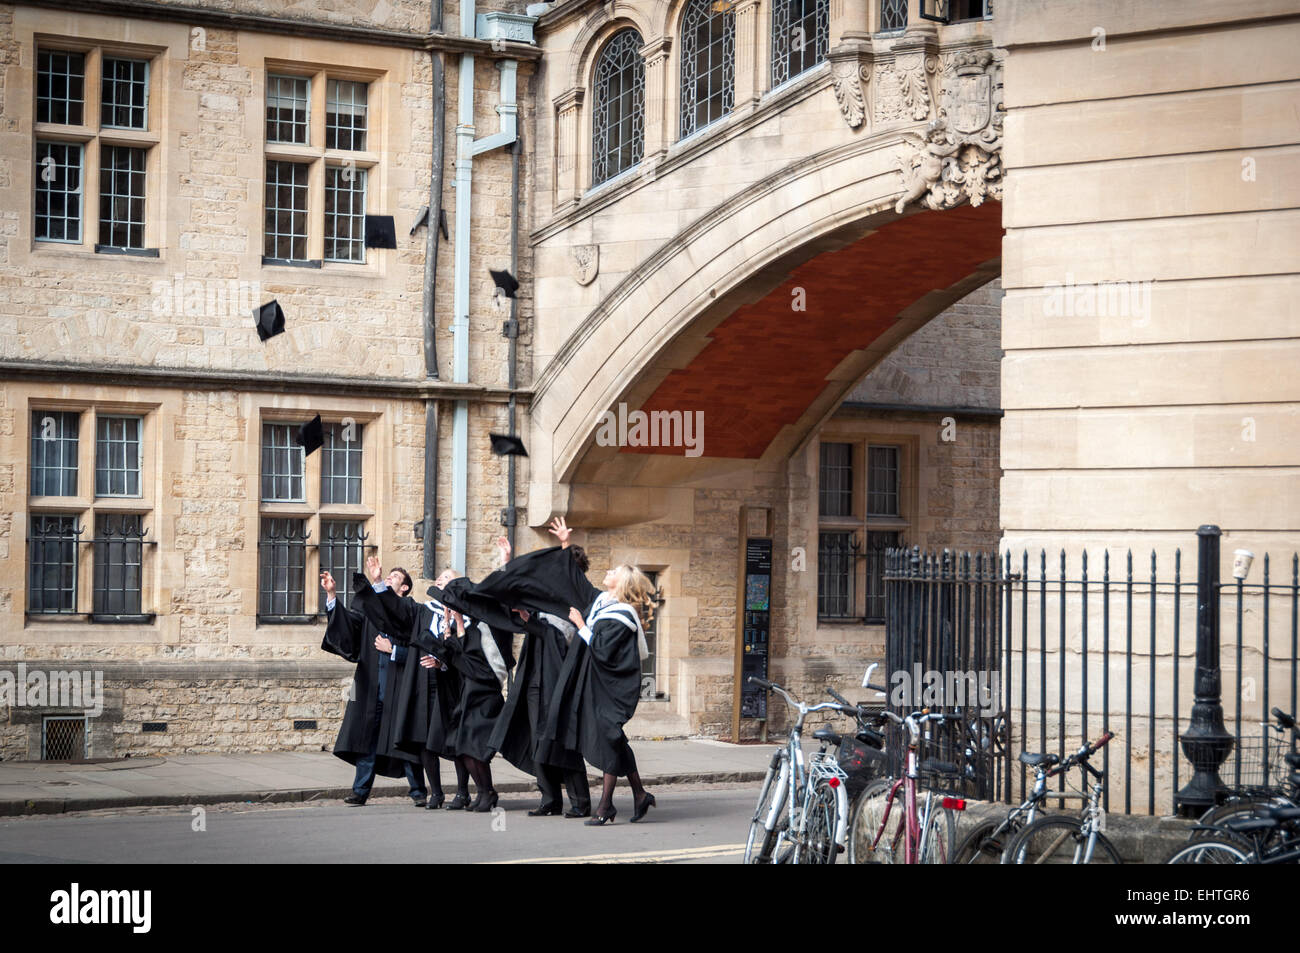 oxford-university-students-celebrate-the-end-of-academic-year-oxford-EHTGR6.jpg